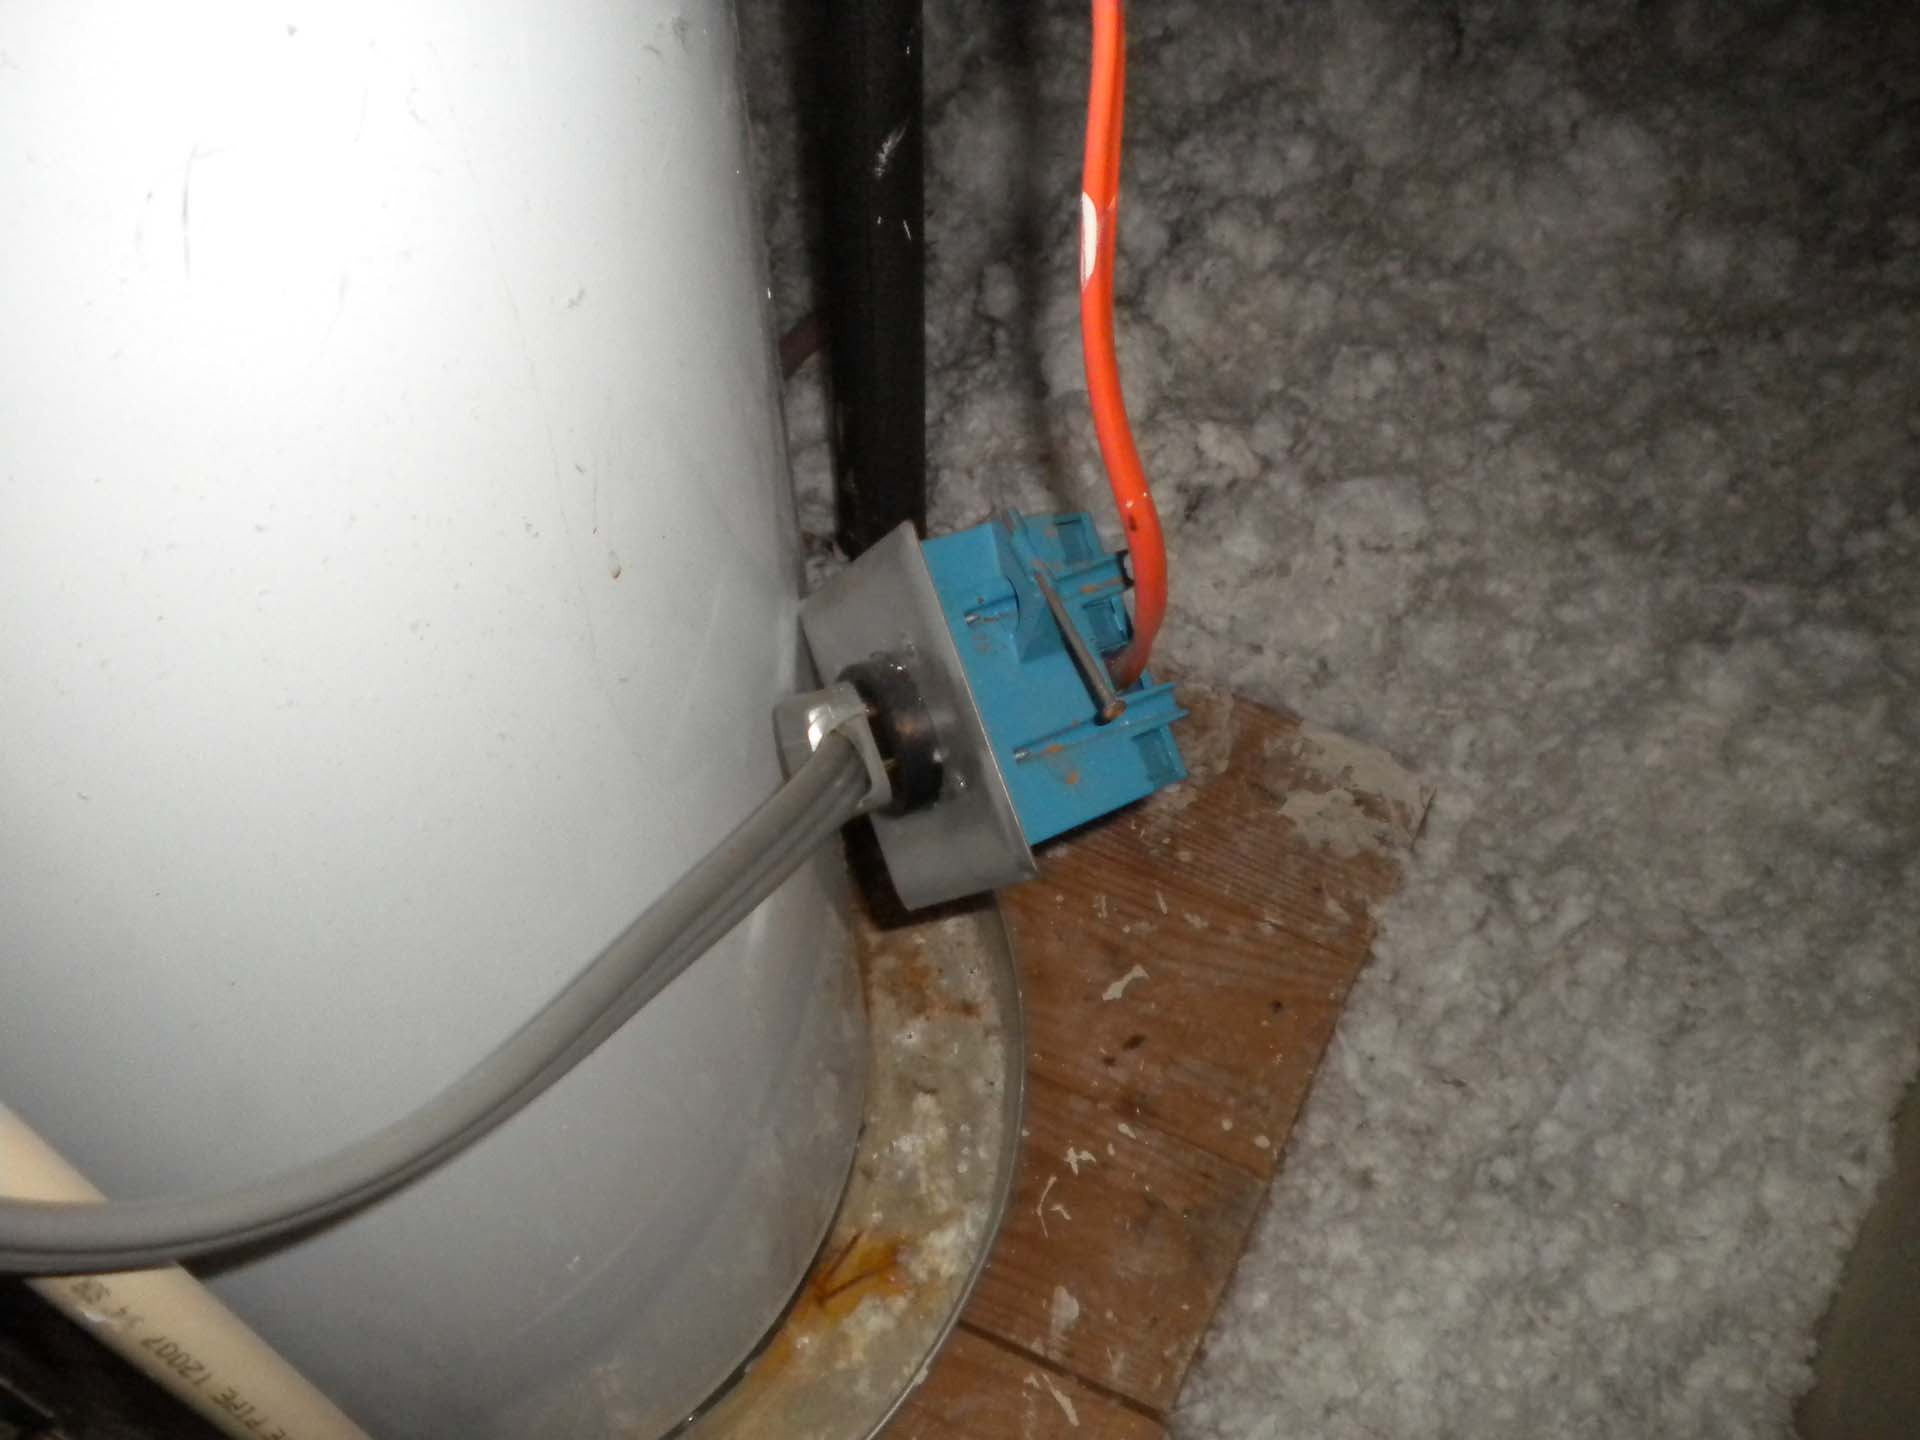 unsecured electrical outlet